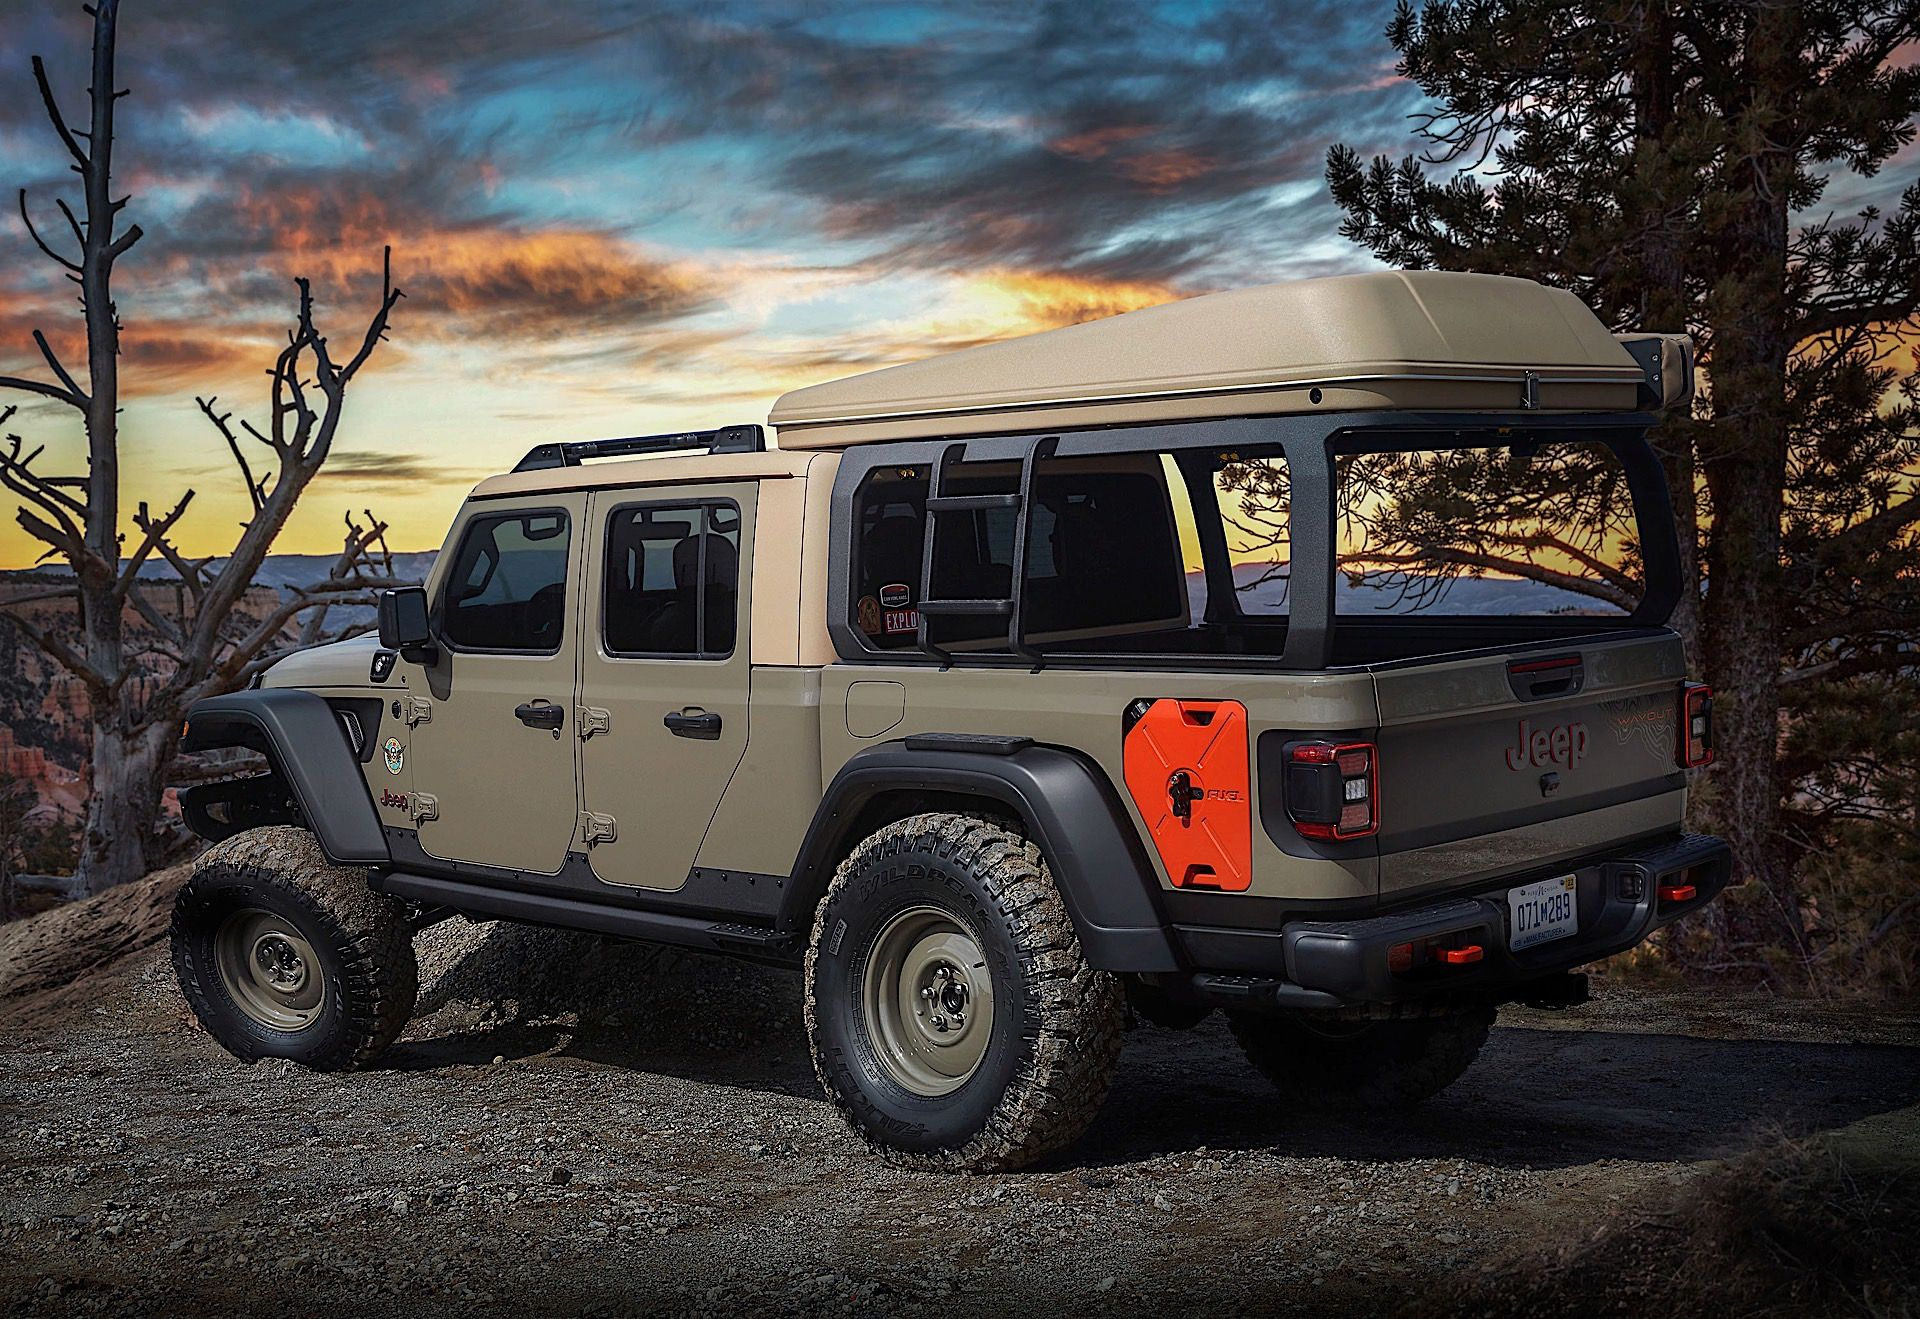 2020 Jeep Gladiator Dominates This Year S Radical Easter Jeep Safari Concepts Voiture Vehicule